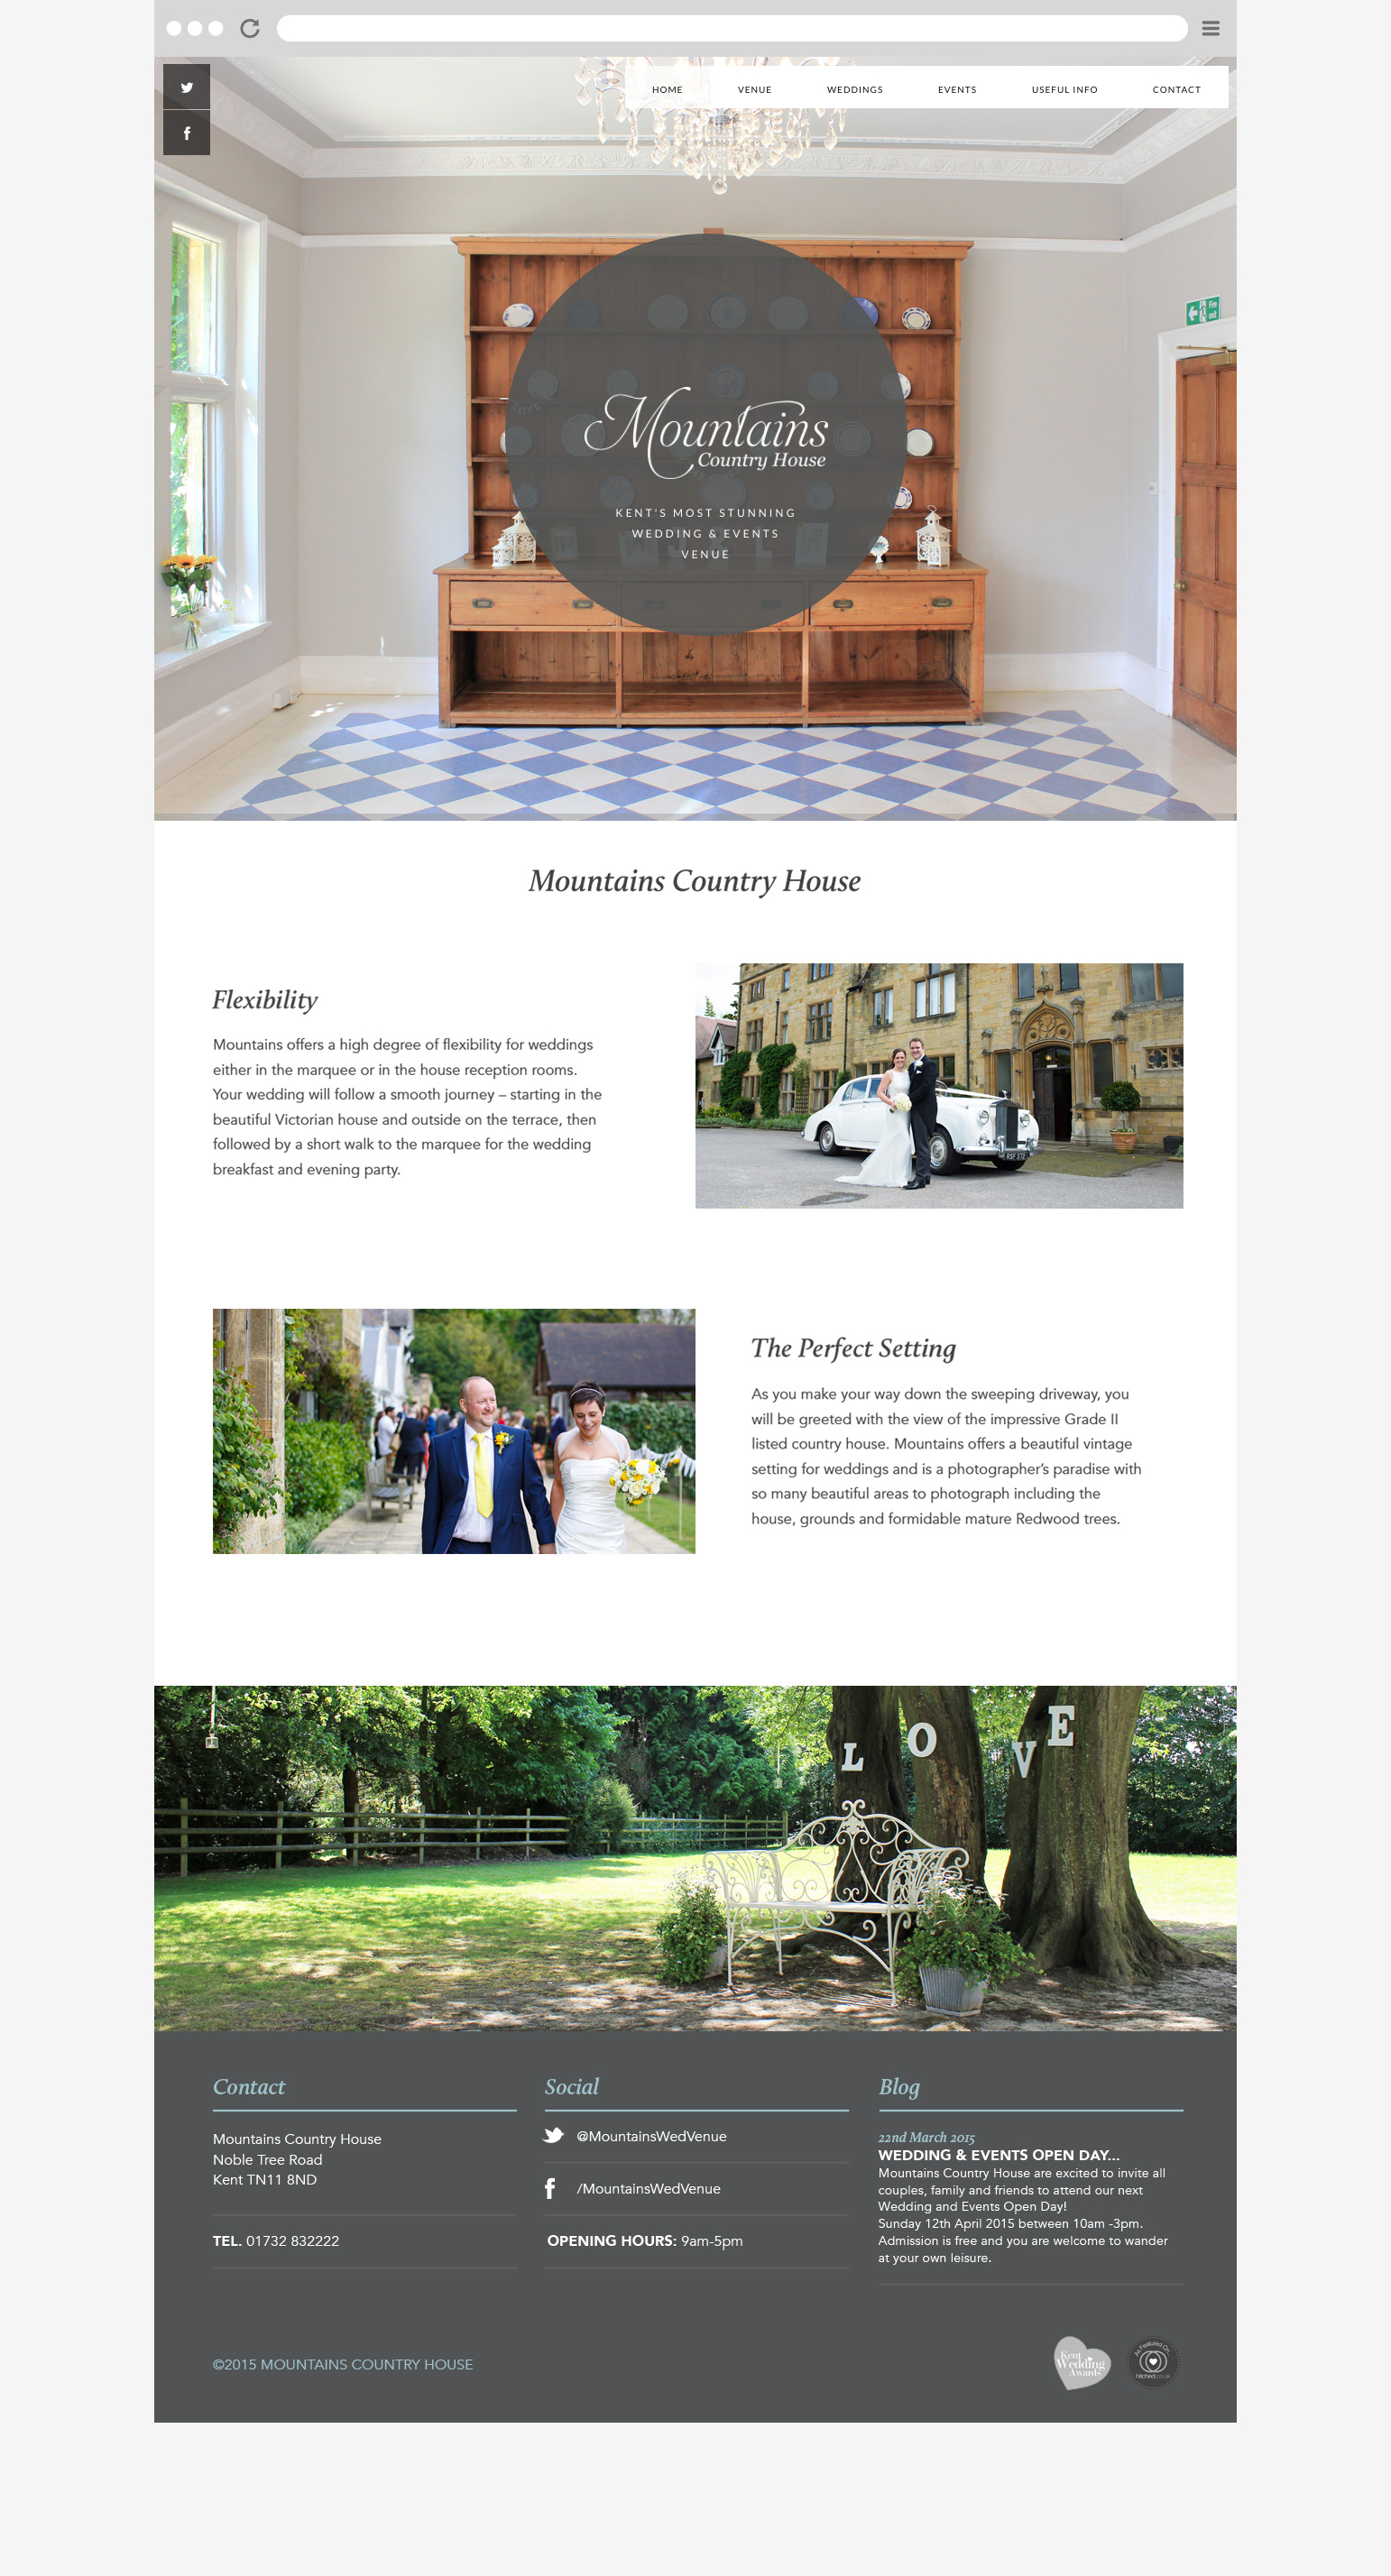 matthew_pomorski_kent_maidstone_graphic_web_designer_mountains_country_house_wedding_venue_page2